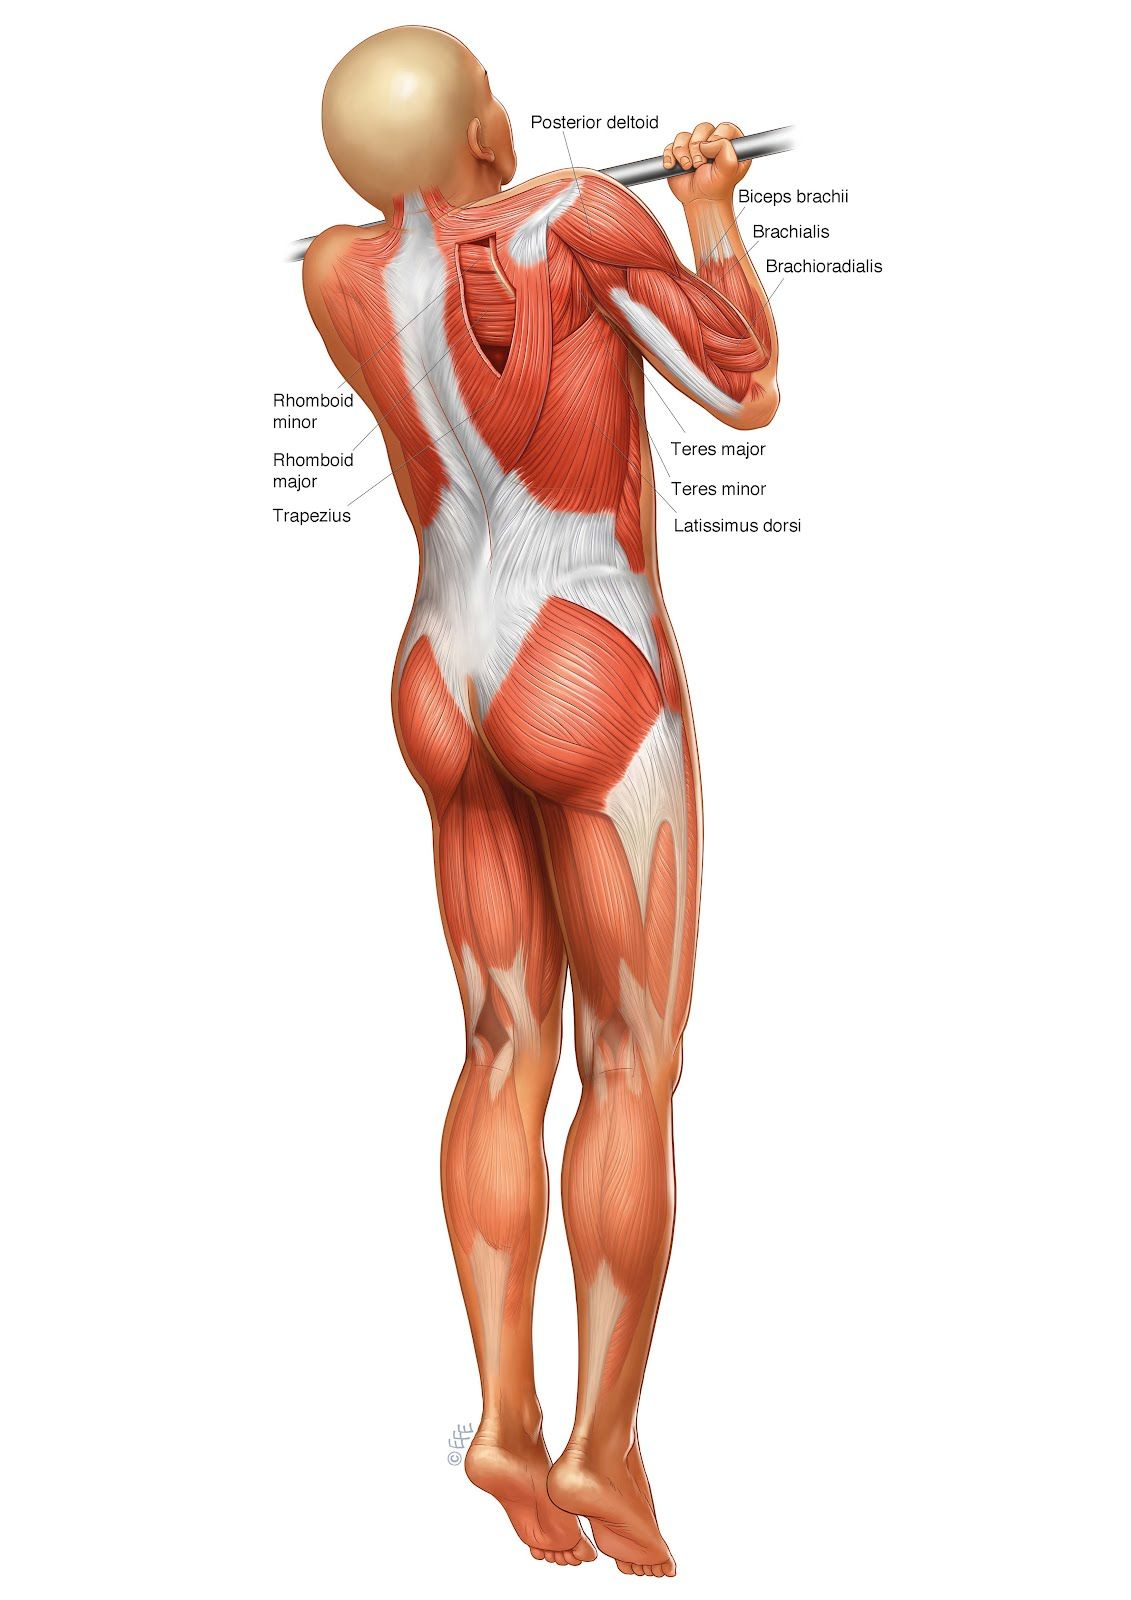 chin-up-anatomy | PULLUPS - ROWING | Pinterest | Training exercises ...